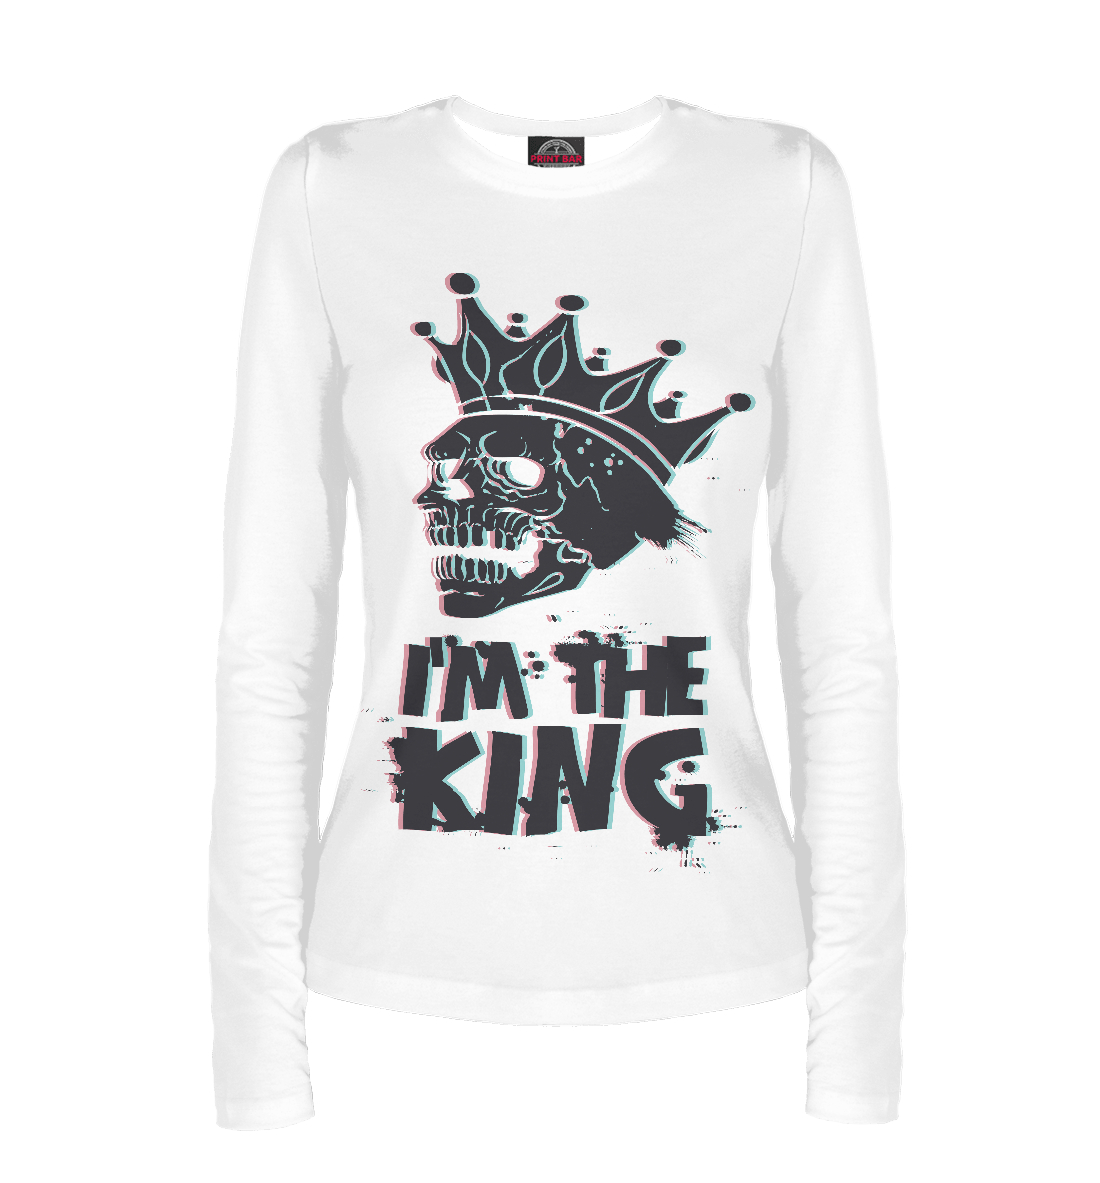 t m frazier king tom 1 the king I`m the king